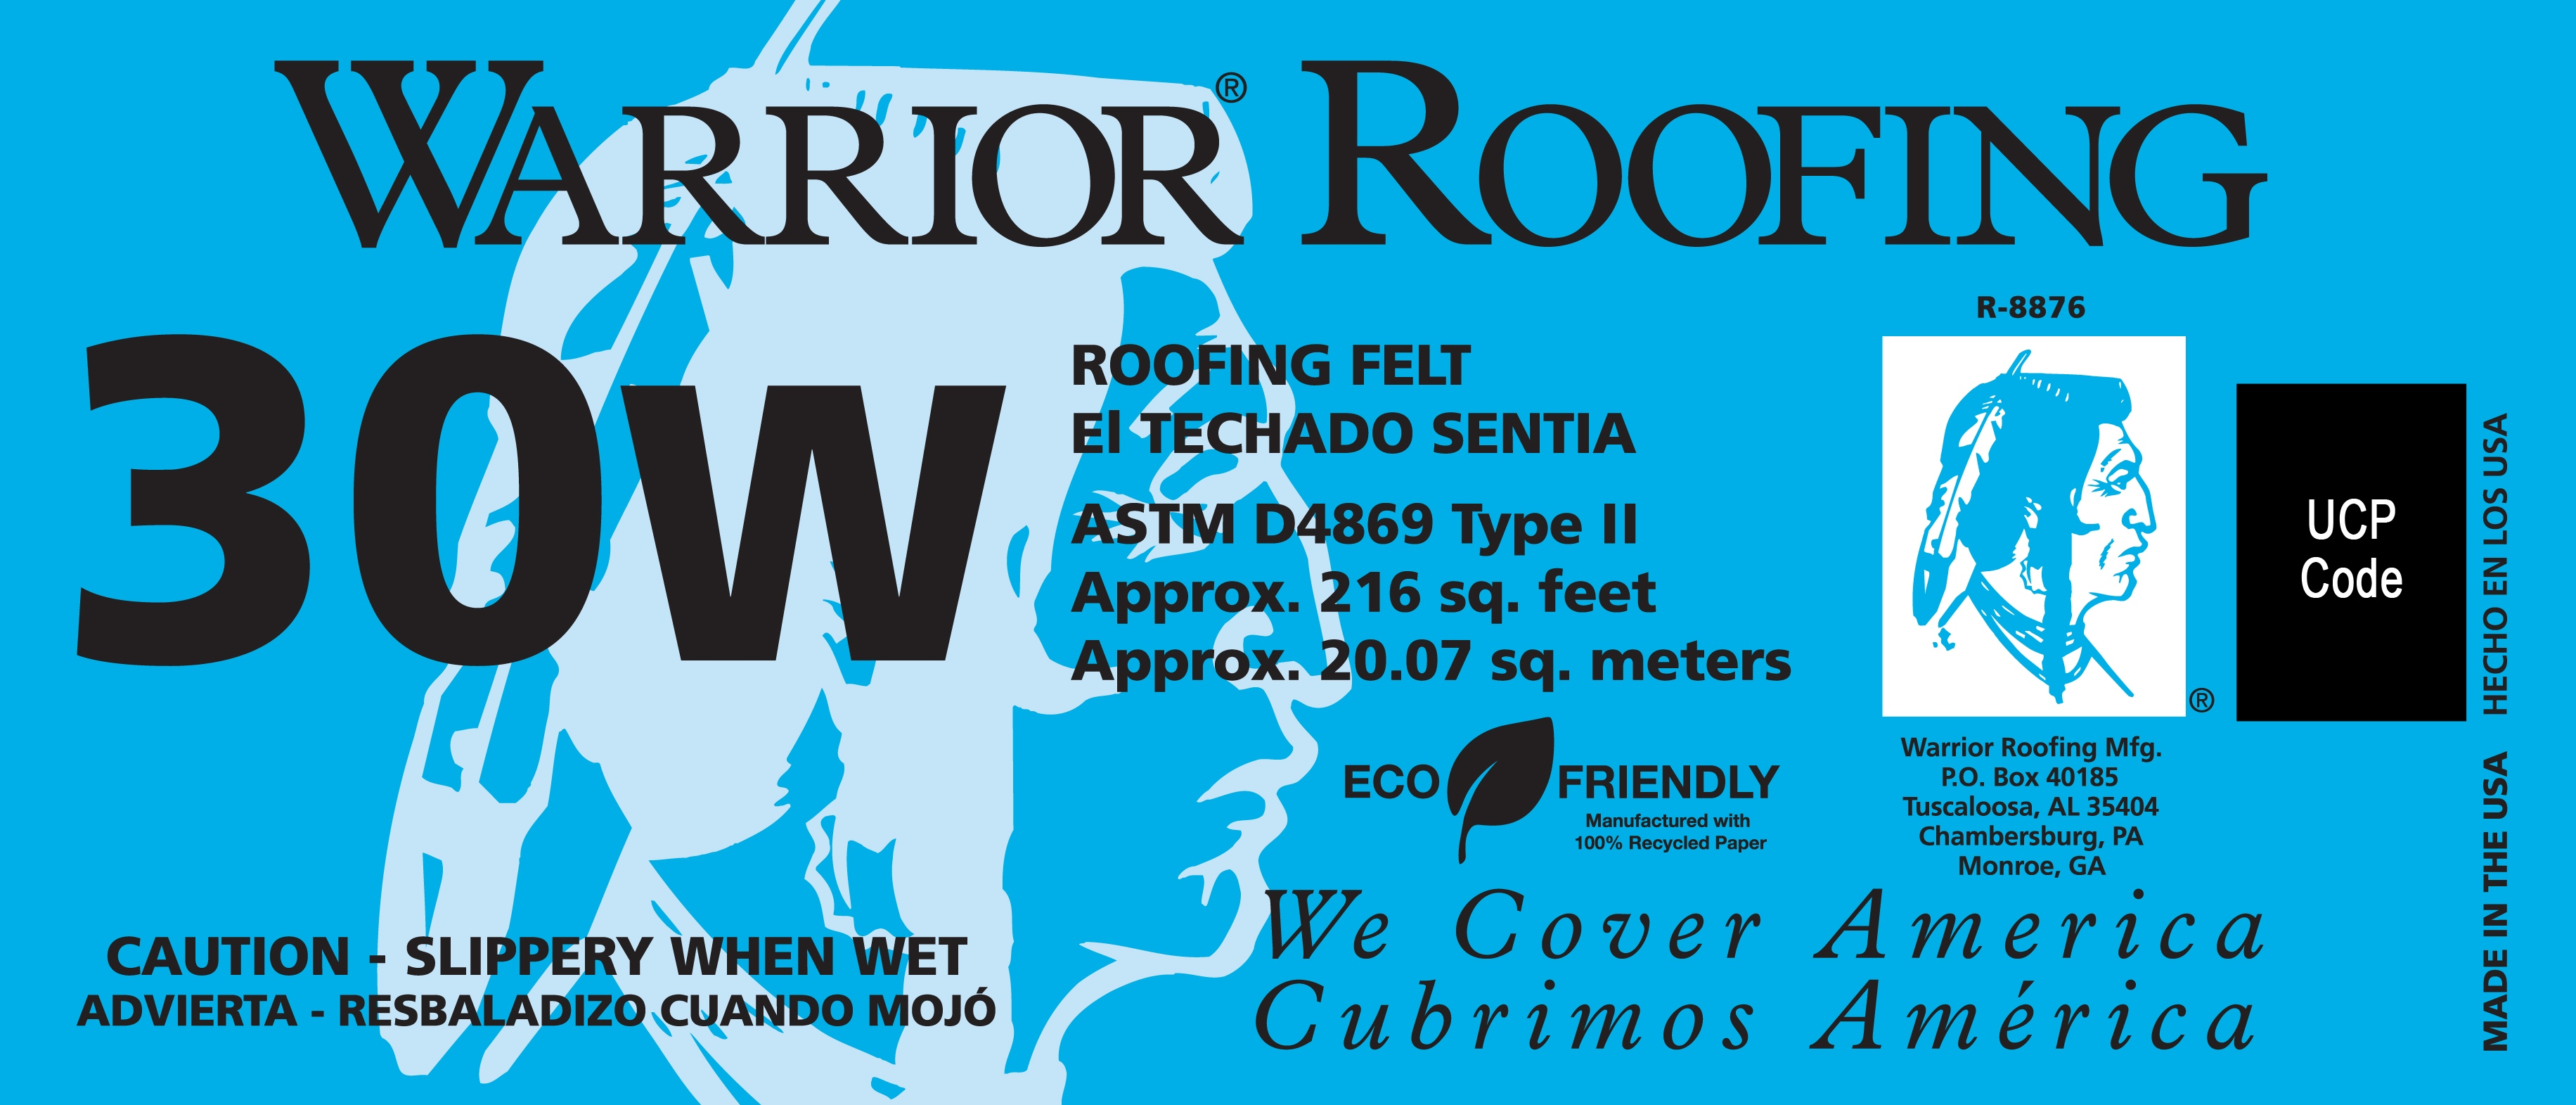 Products Warrior Roofing Mfg